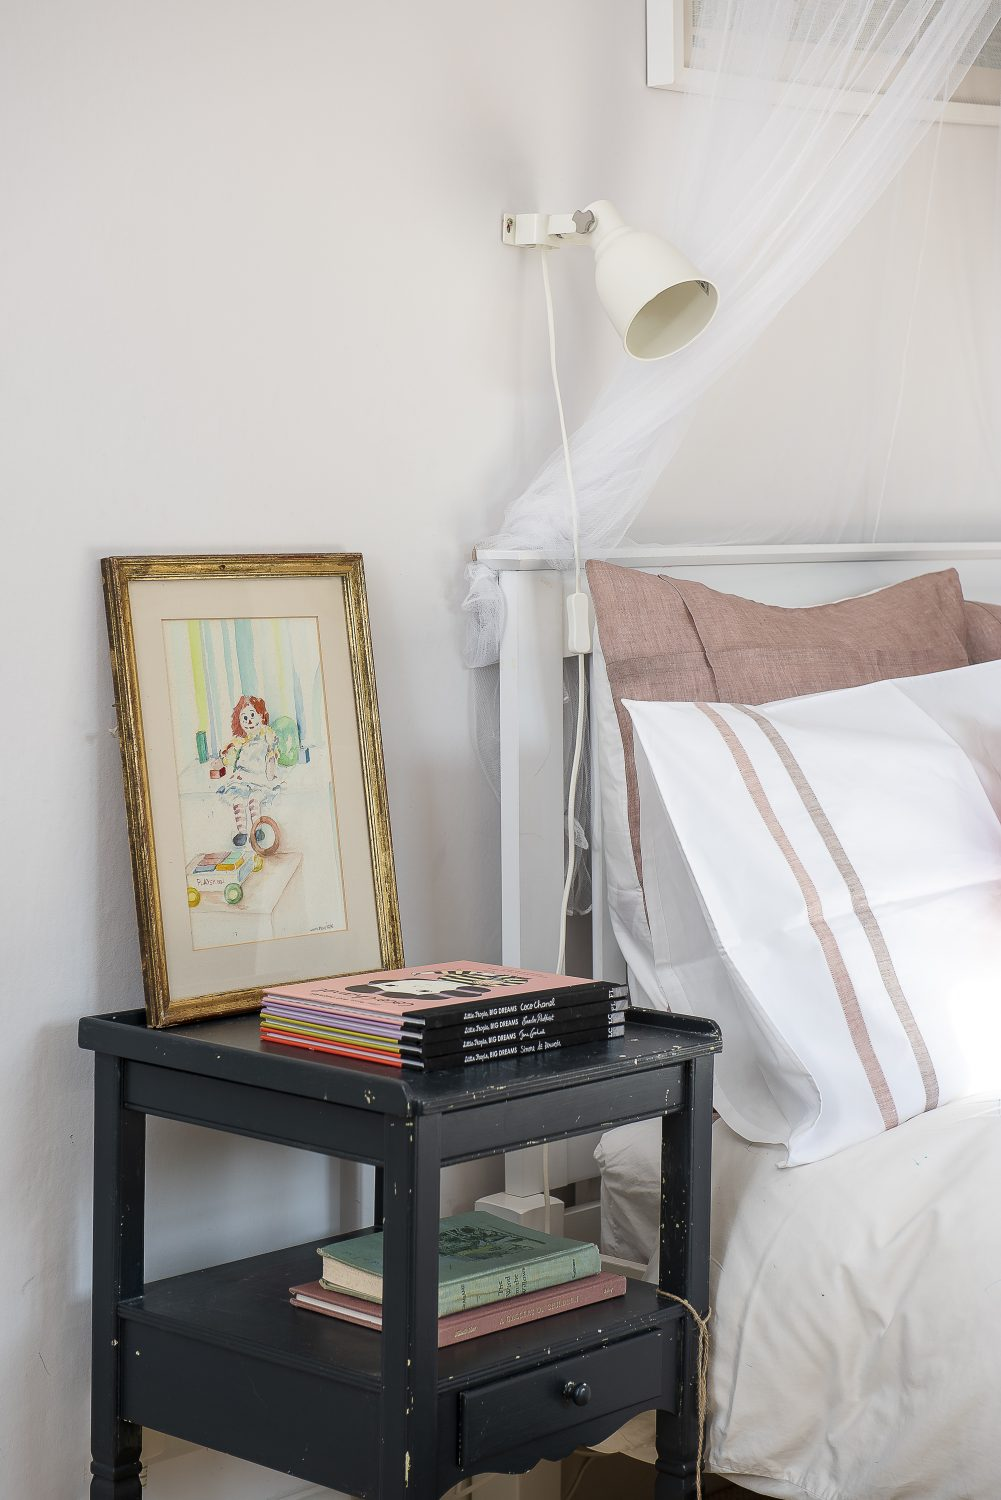 Toby and Megan's daughter's room has a built-in wardrobe and an original Arts and Crafts fireplace. Both are painted in Farrow & Ball's Brinjal, which works beautifully with the soft pinks in this delightful bedroom